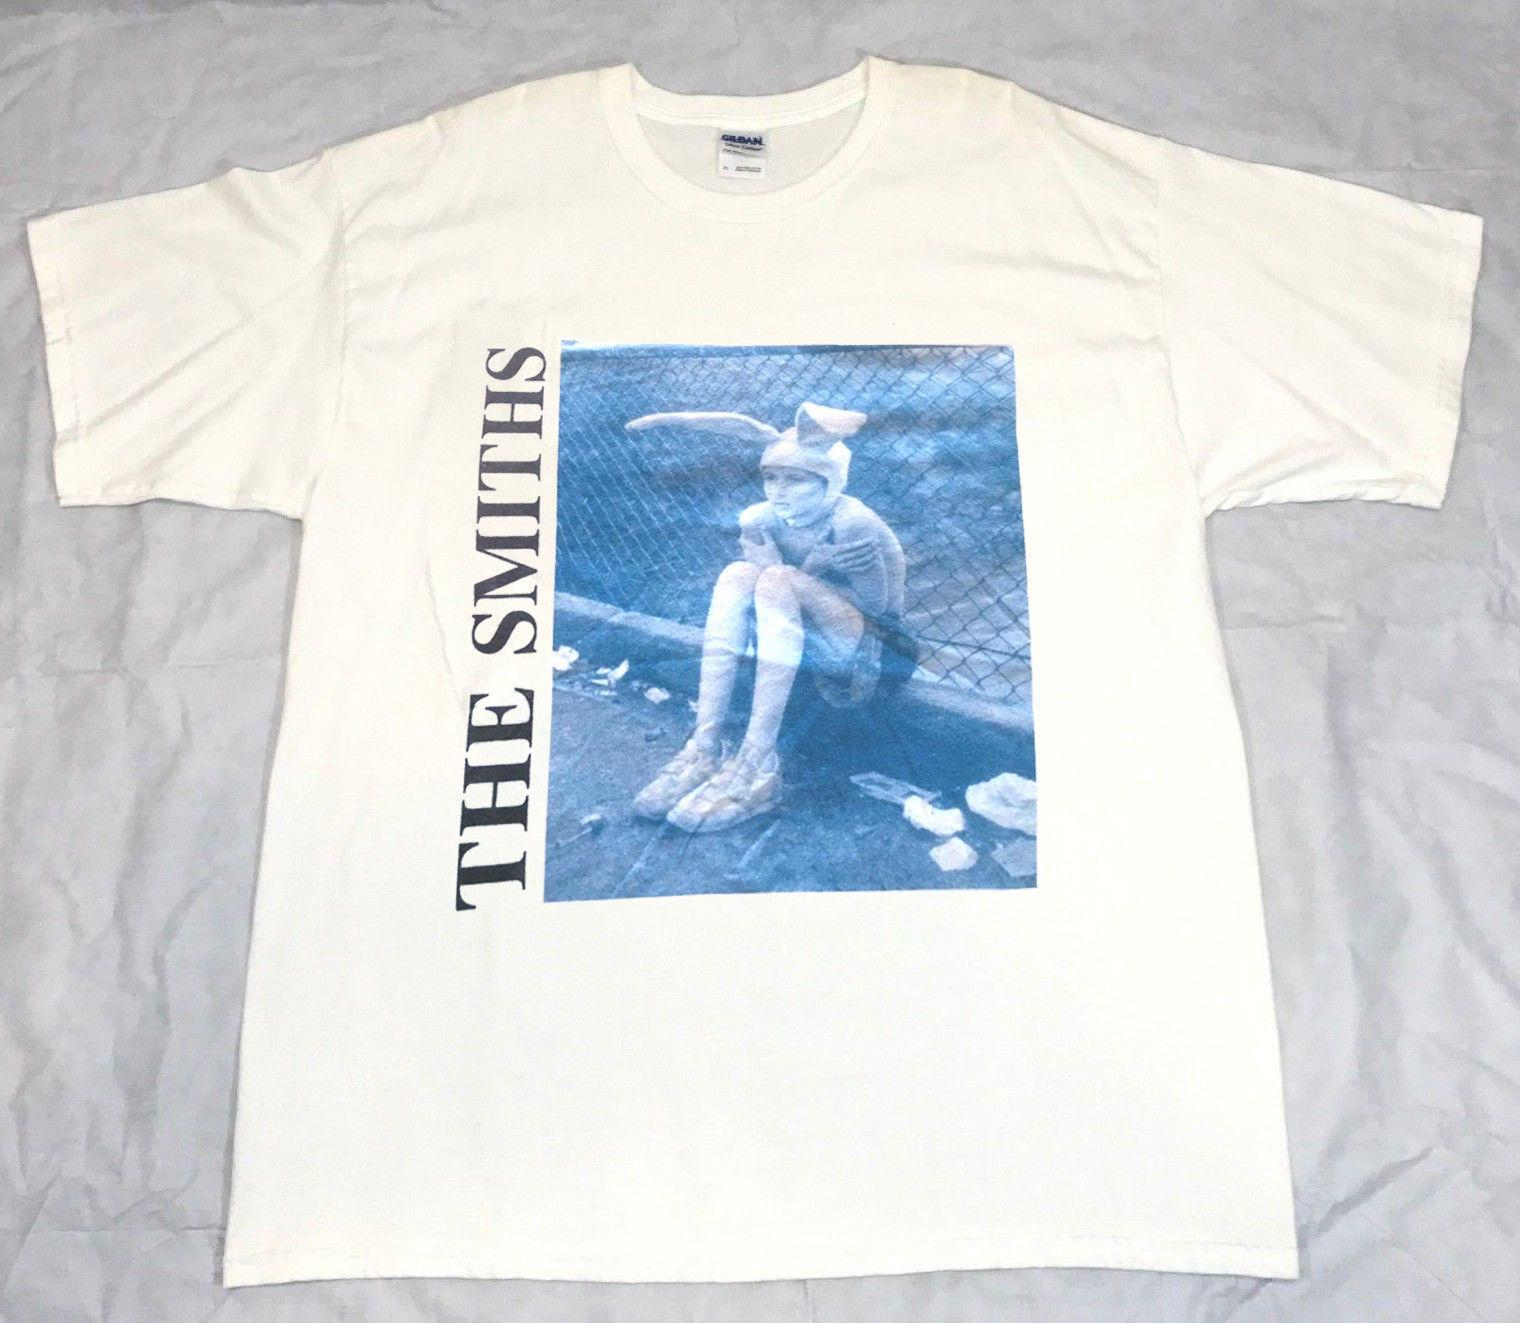 25f56e187ebc The Smiths X Gummo Collab T Shirt Morrissey Larry Clark Kids Reprint New  Funny Unisex Casual Tshirt Silly T Shirts Interesting T Shirts From  Workwearstores, ...